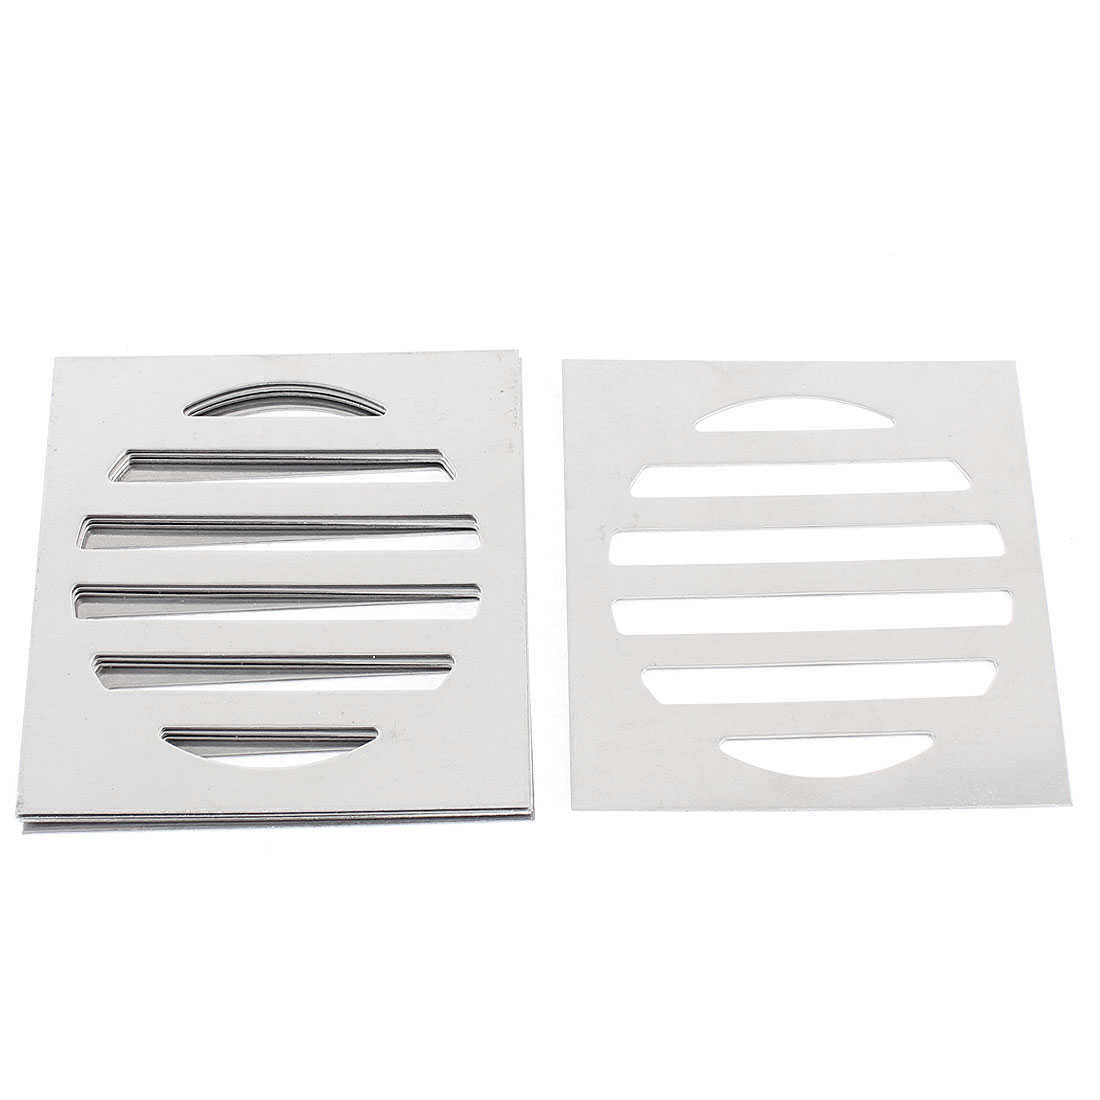 Unique Bargains Stainless Steel Kitchen Bathroom Square Floor Drain Cover 3' 7.5cm 5pcs